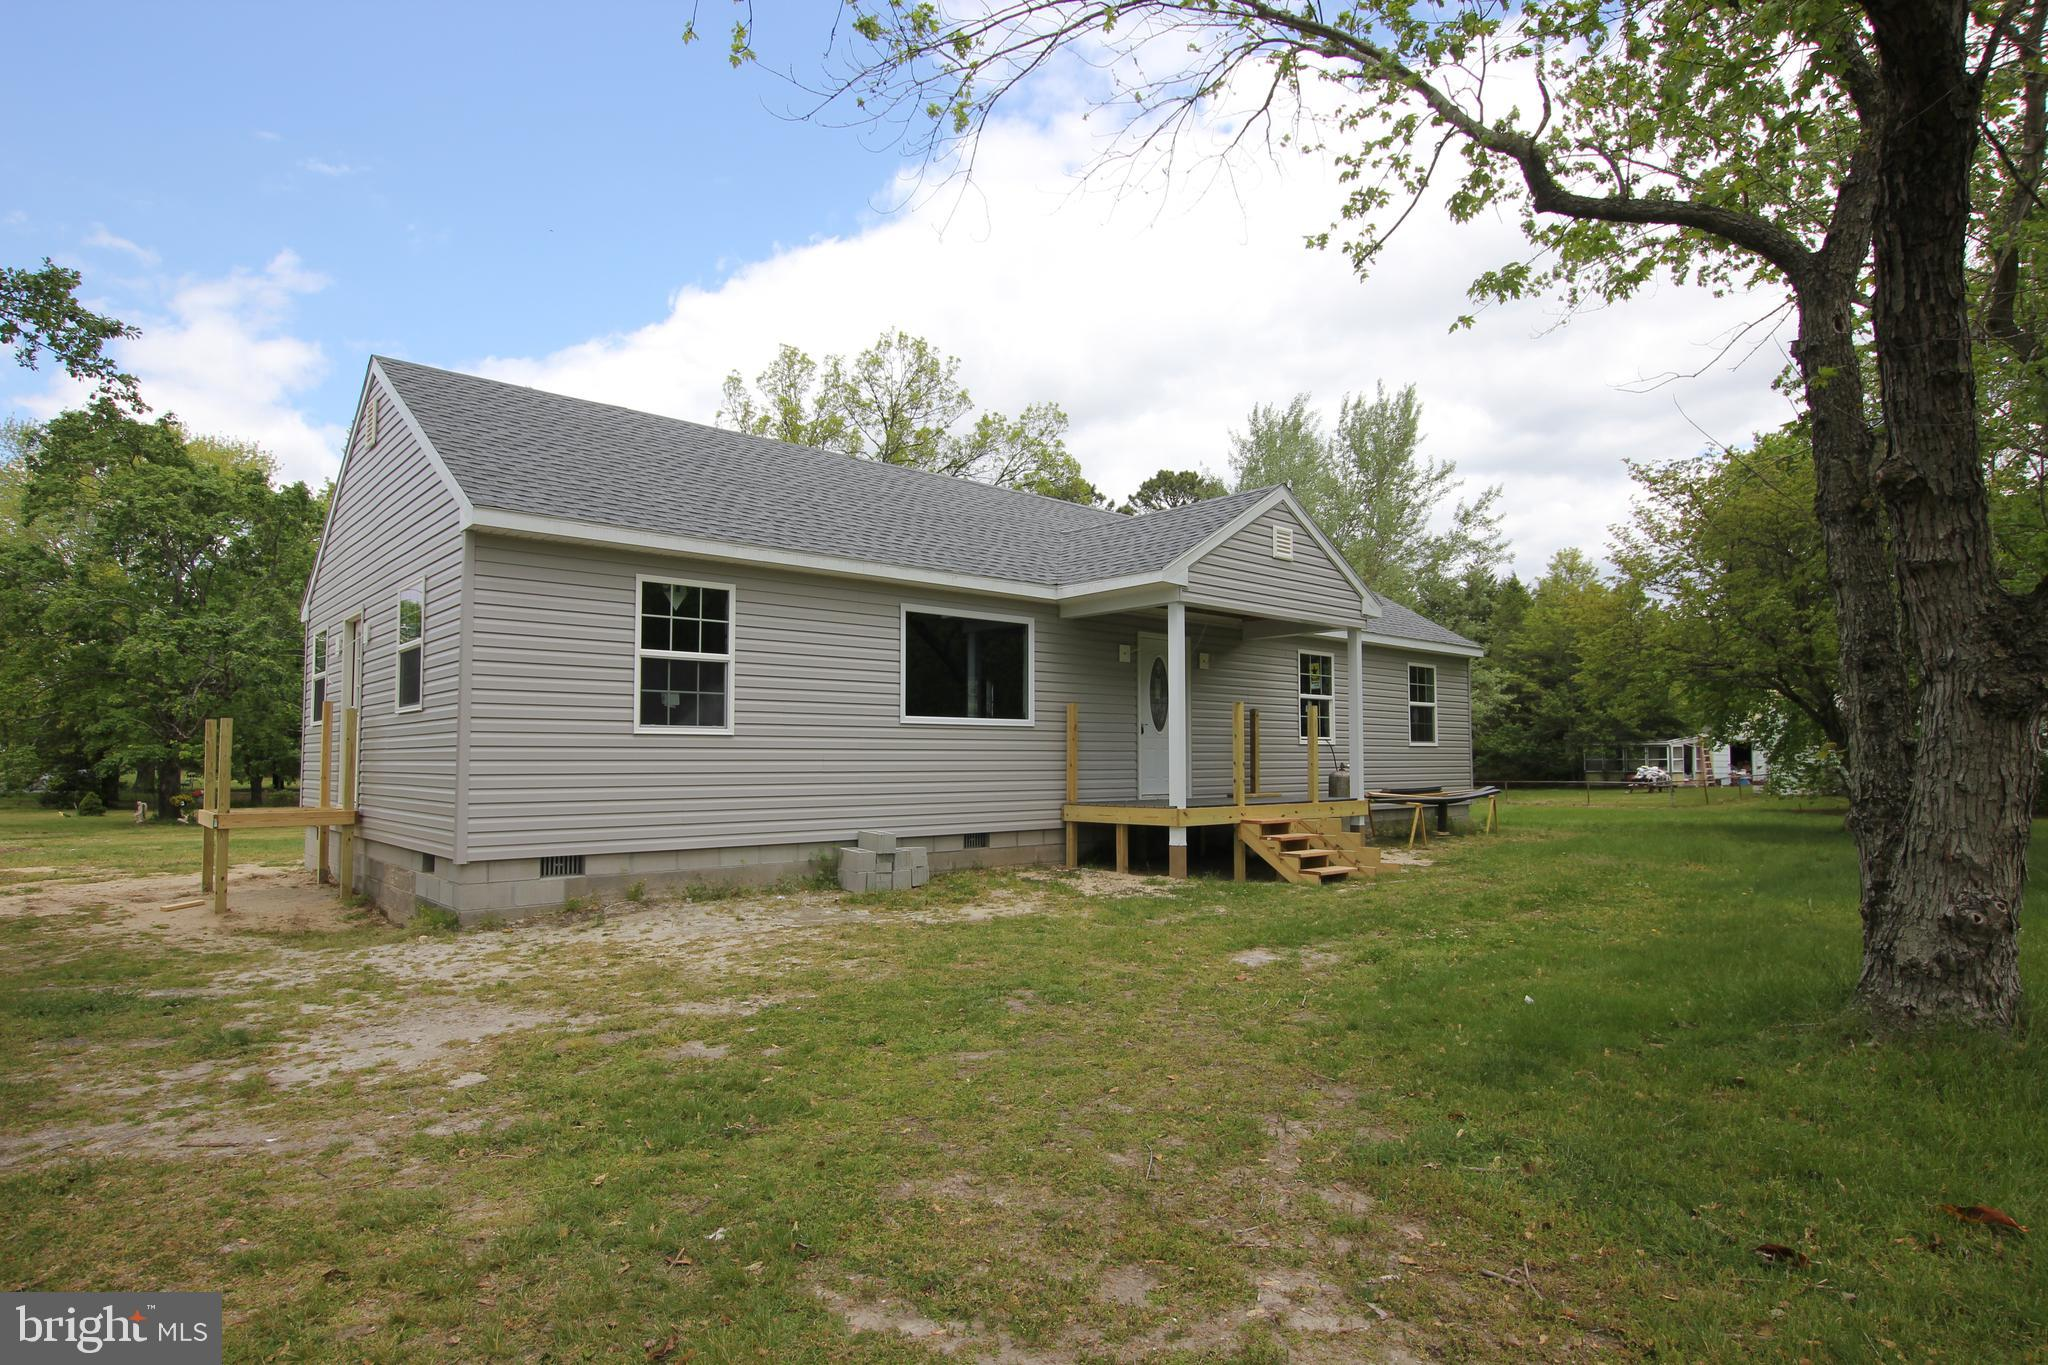 Brand new construction home located on a spacious corner lot. One-level rancher style home with thre